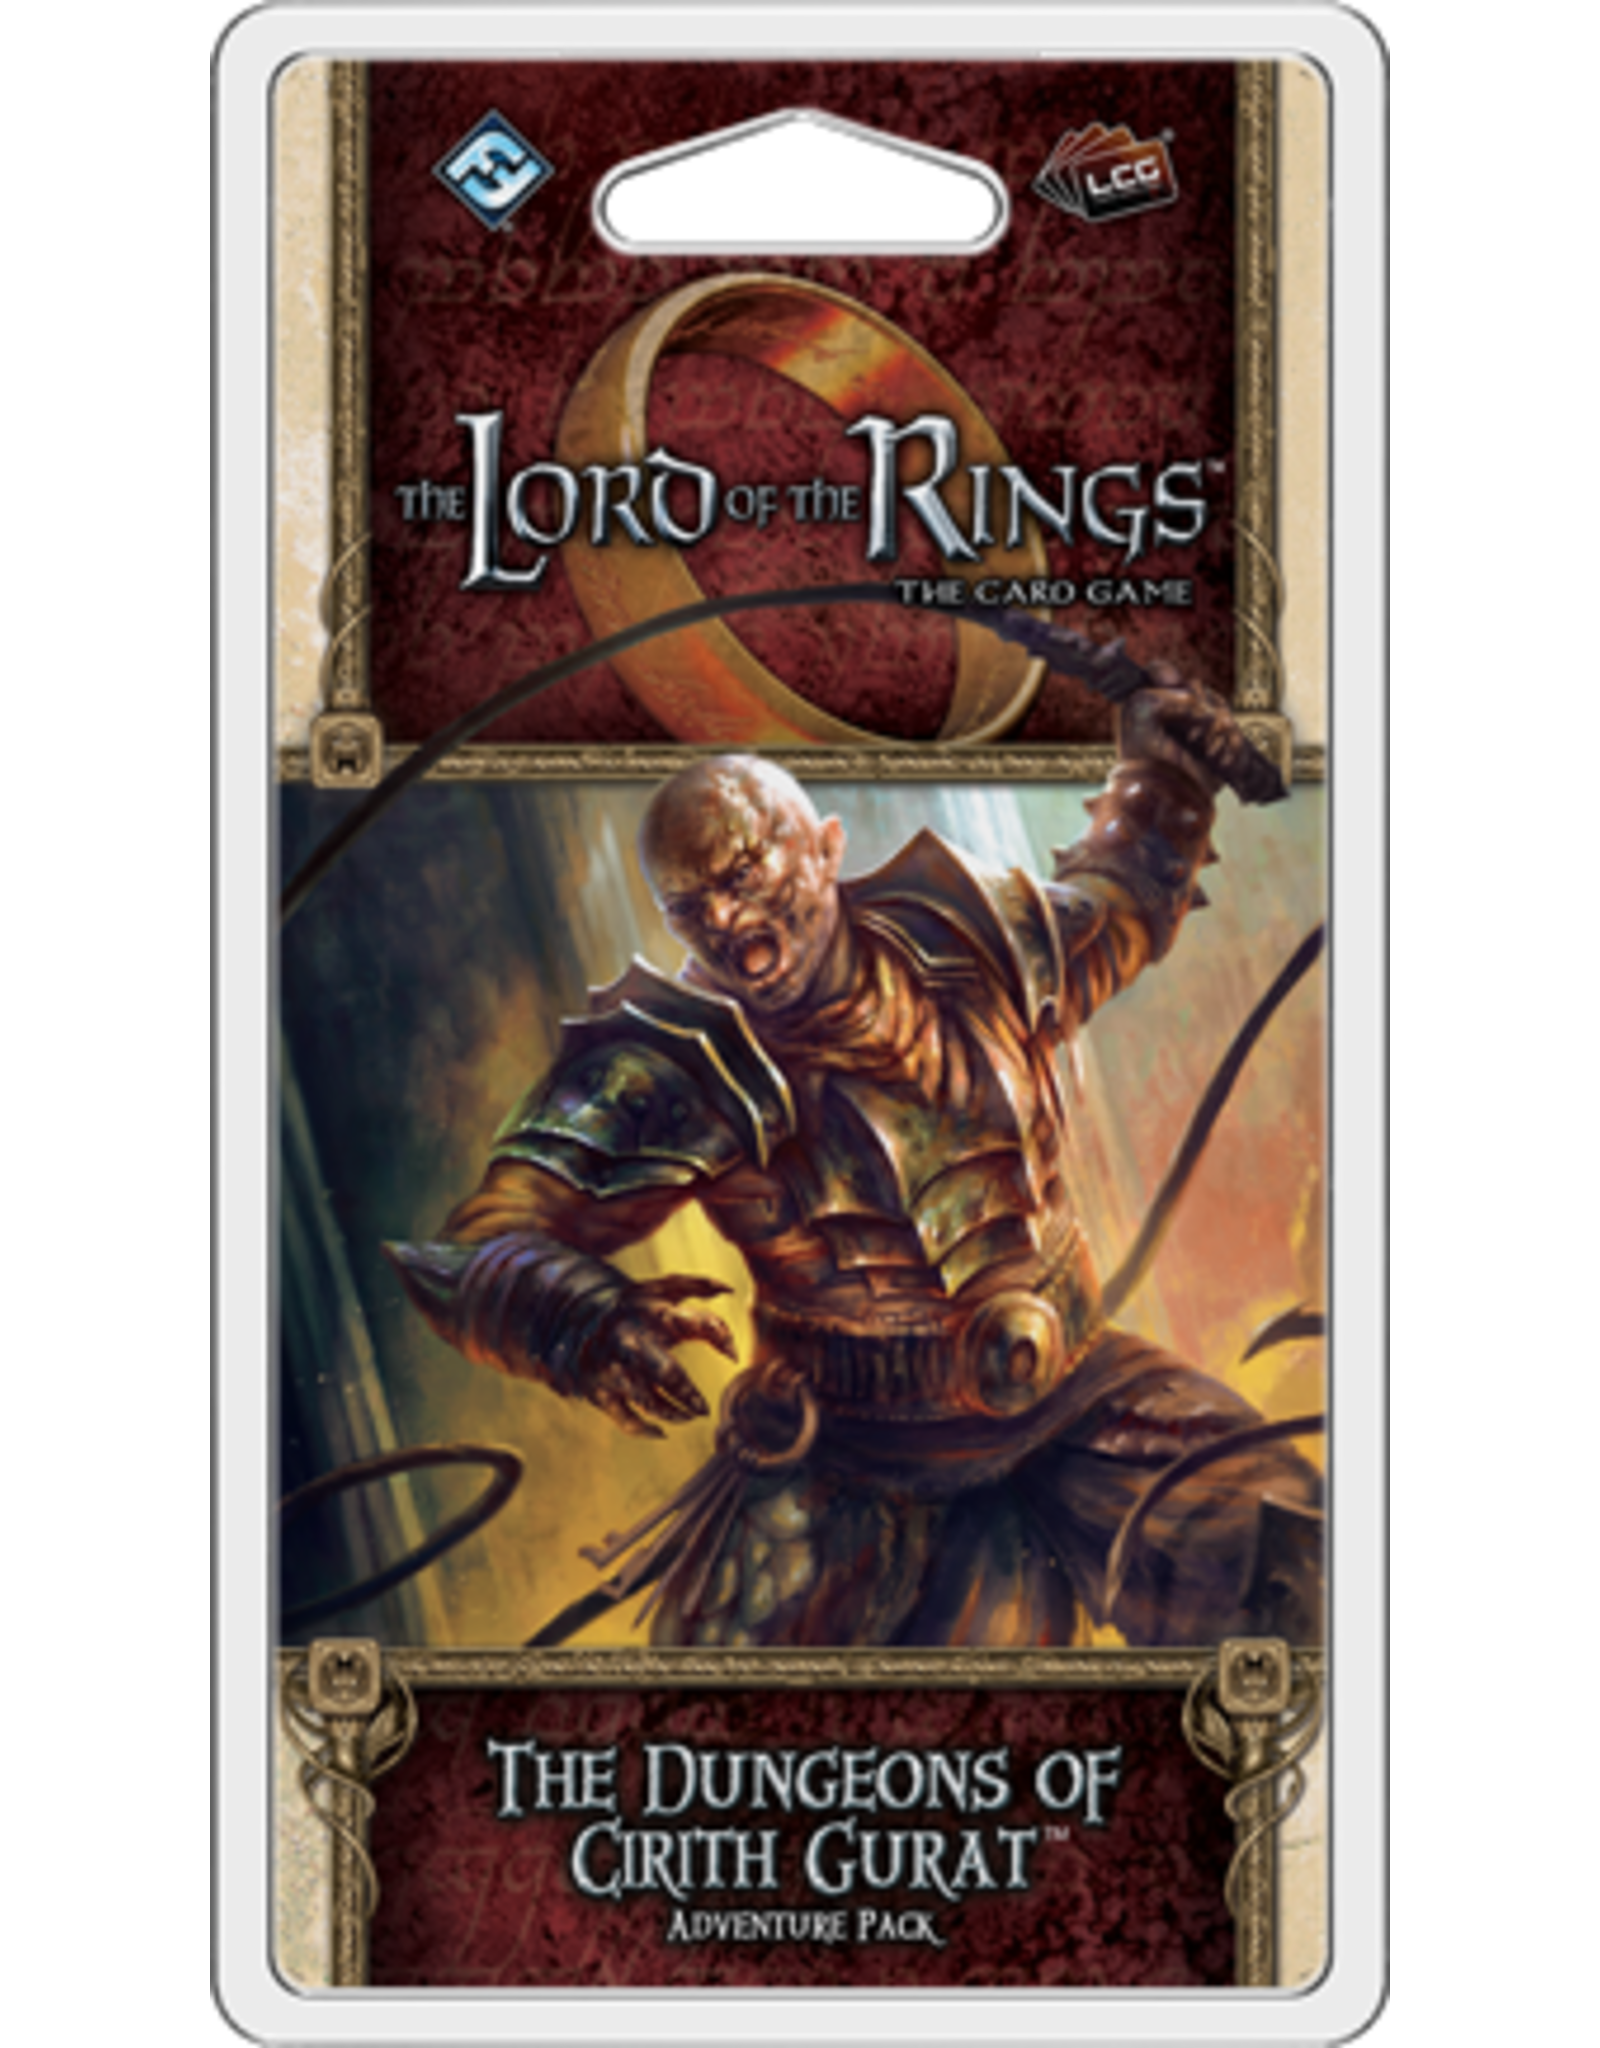 Lord of the Rings LCG The Dungeon of Cirth Gurat Adventure Pack